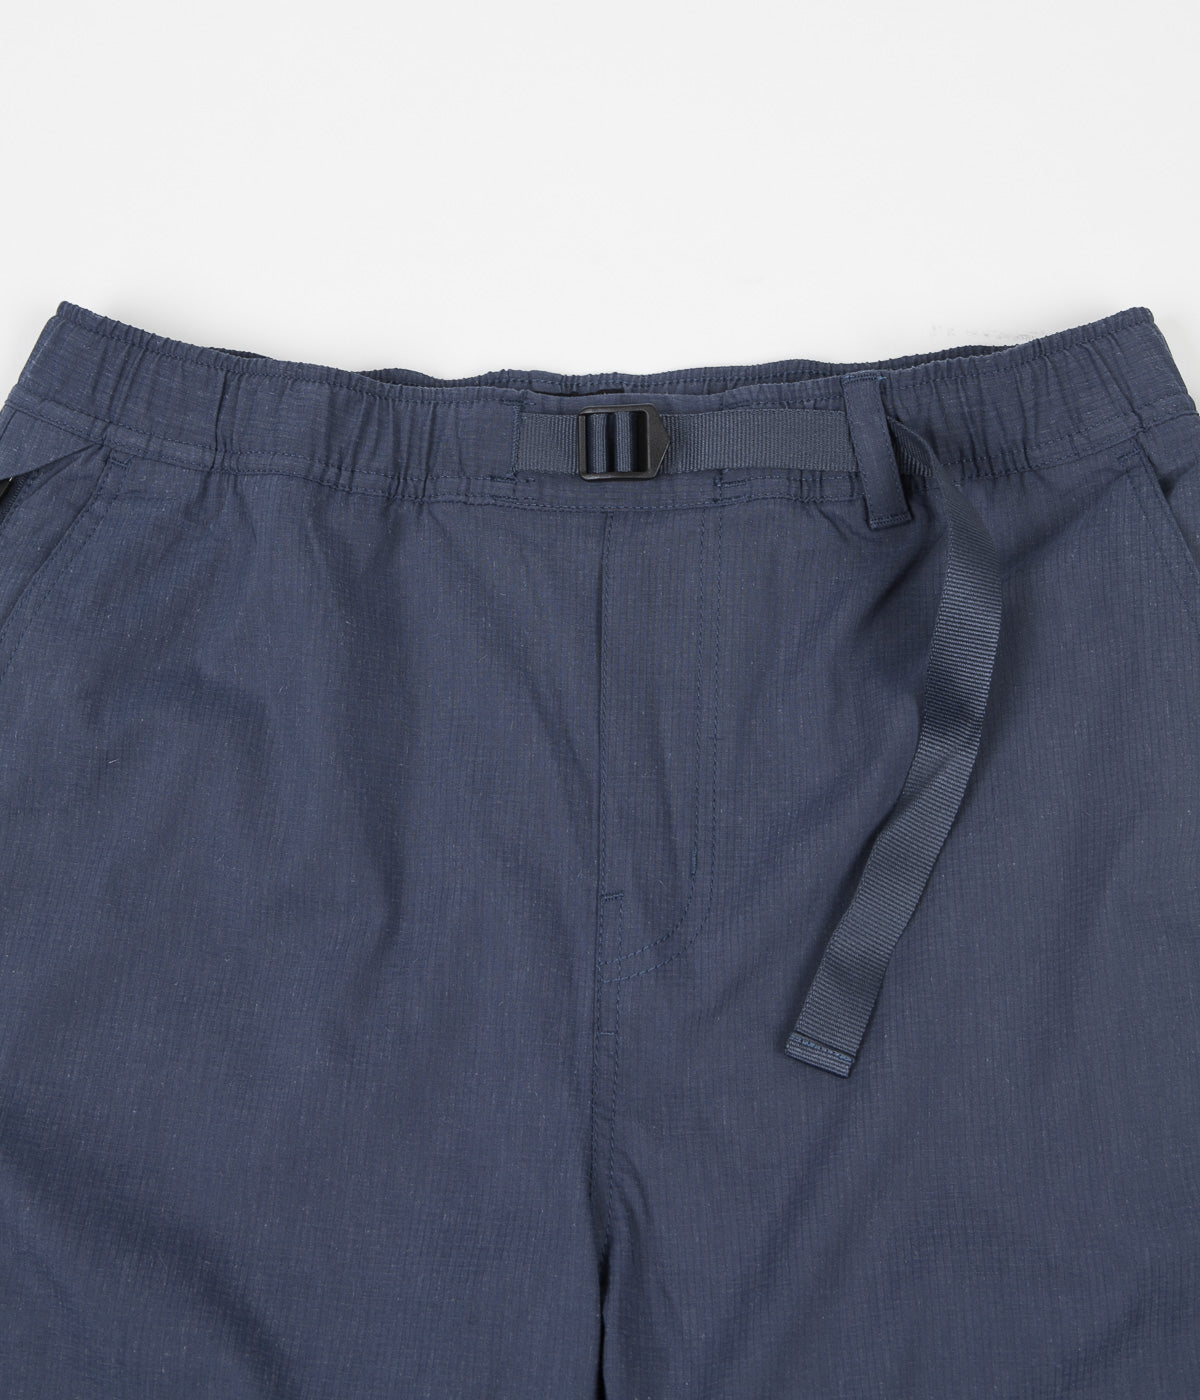 Brixton Cinch X Shorts - Washed Navy / Fern